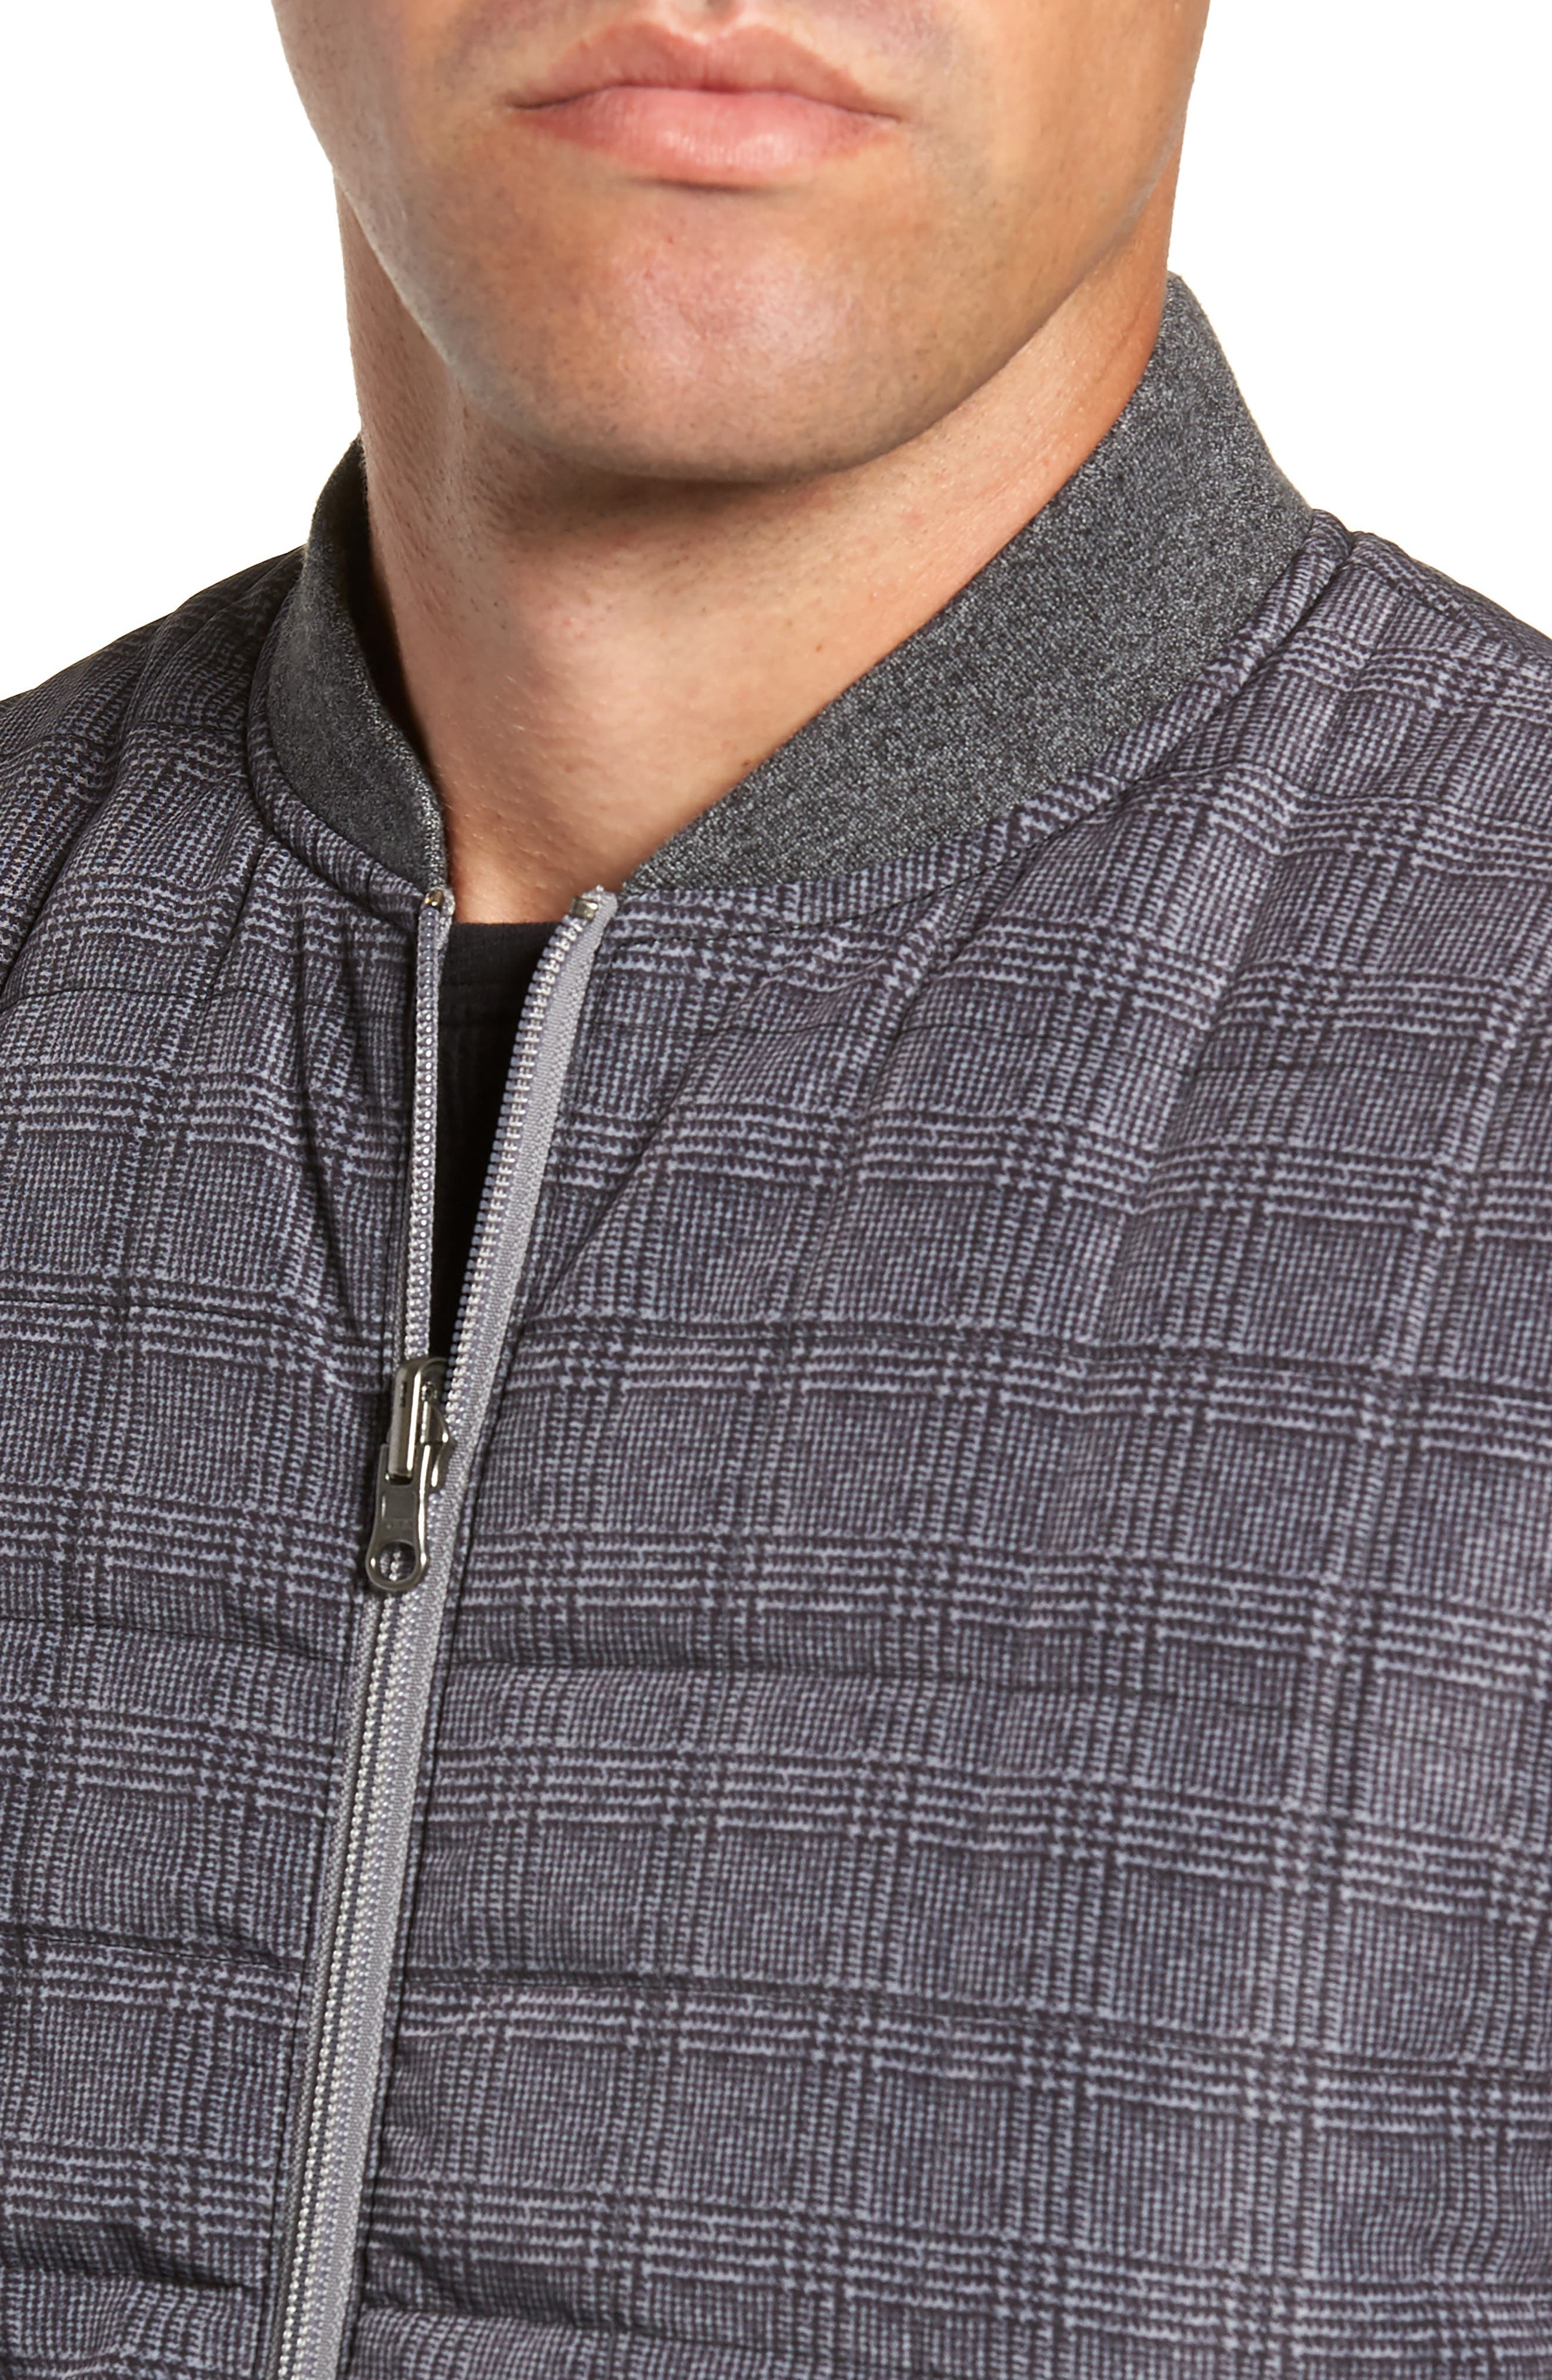 Romeo Plaid Quilted Vest,                             Alternate thumbnail 4, color,                             CHARCOAL